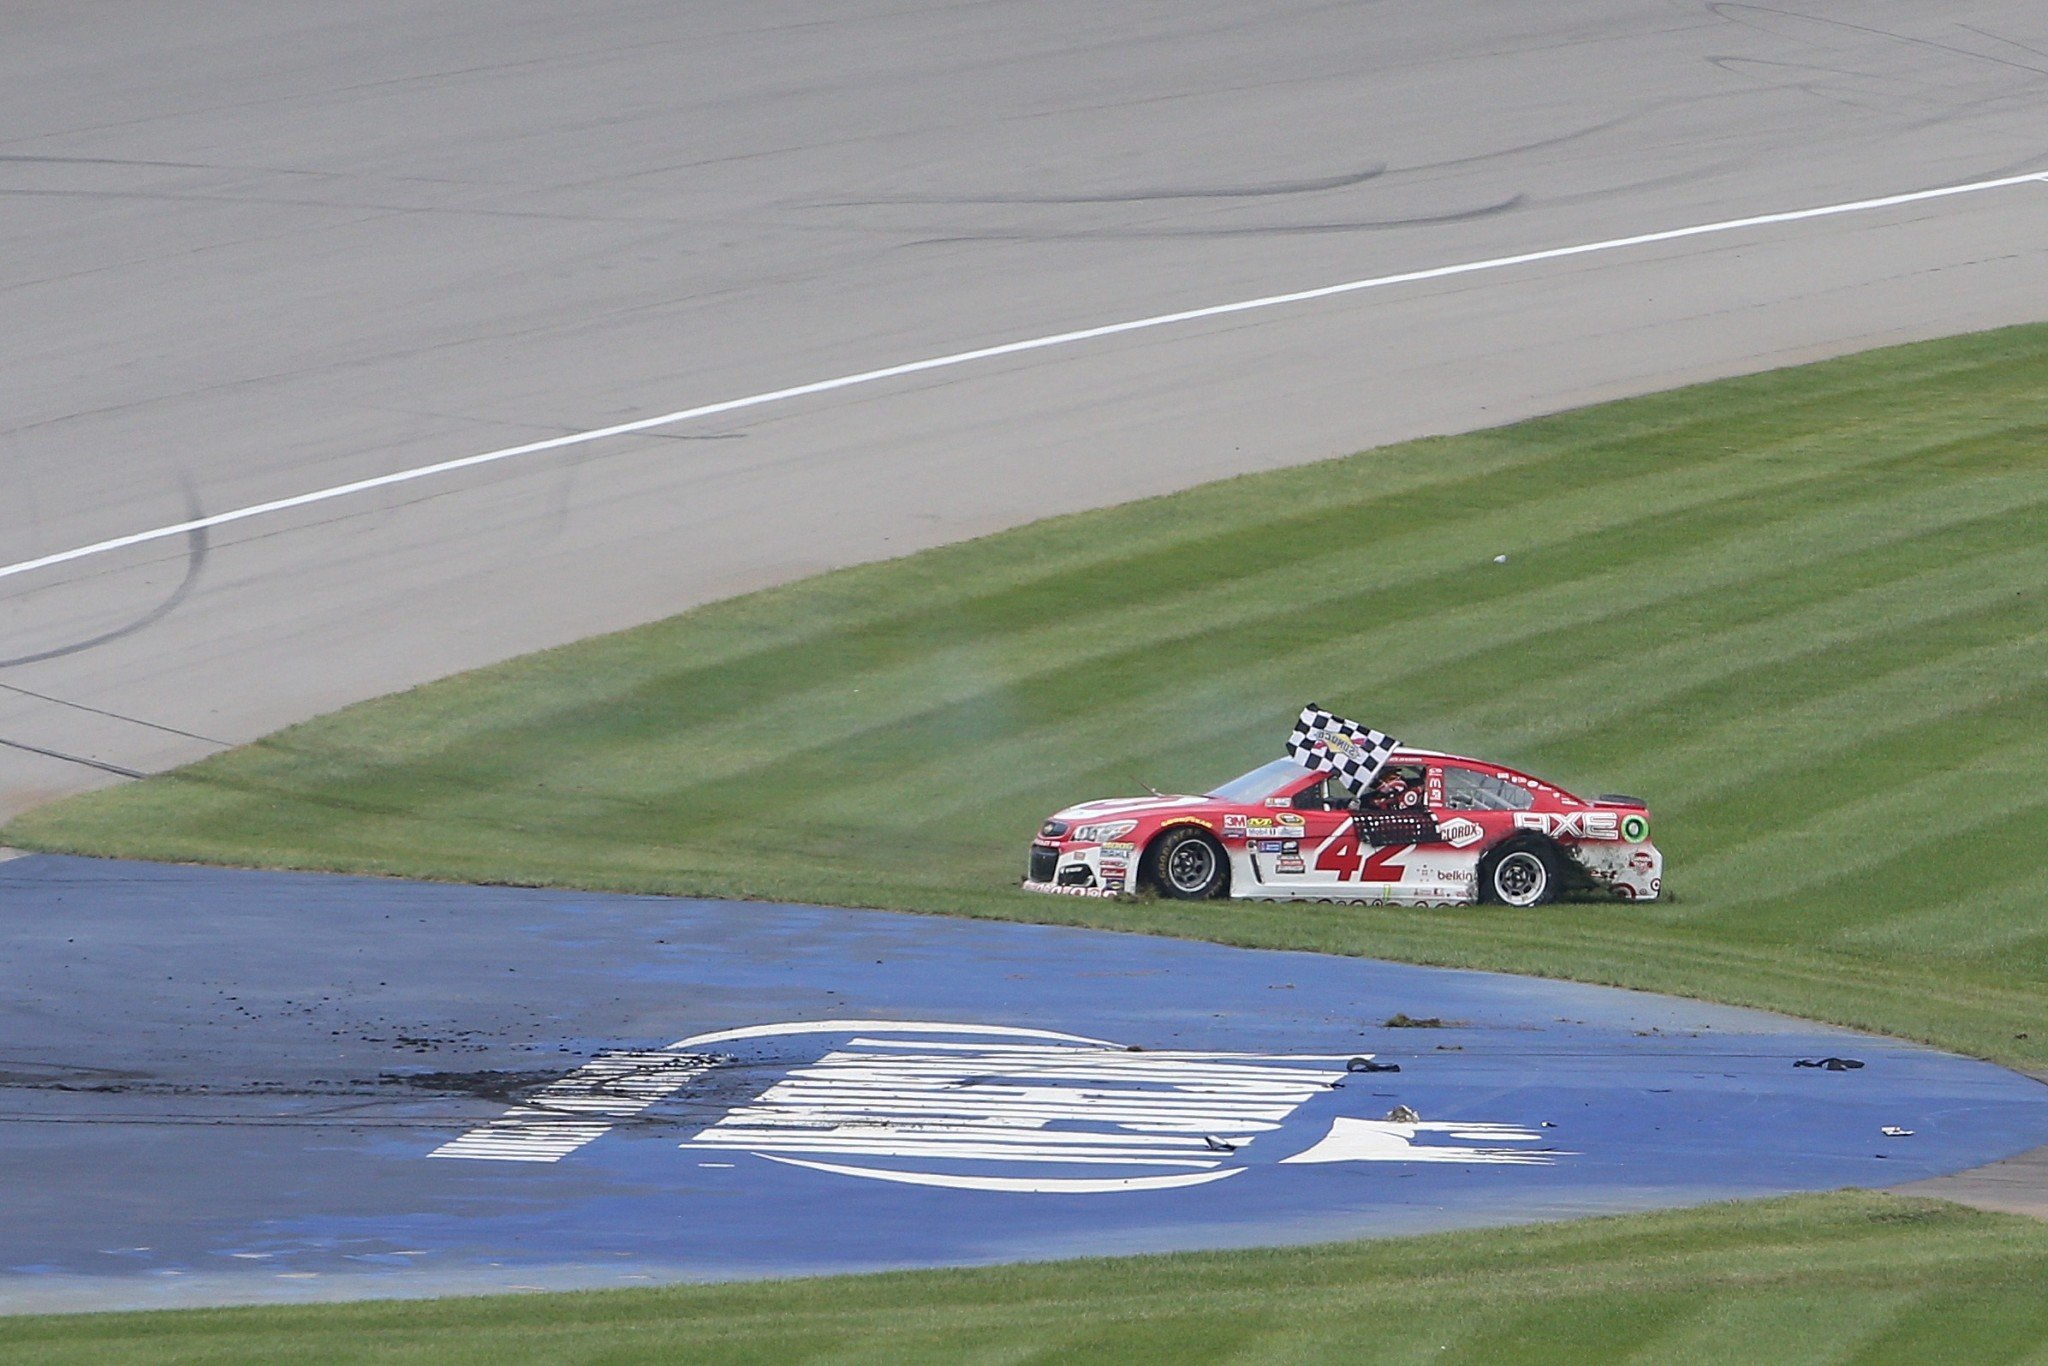 Kyle Larson got his first points win on Sunday (Getty).